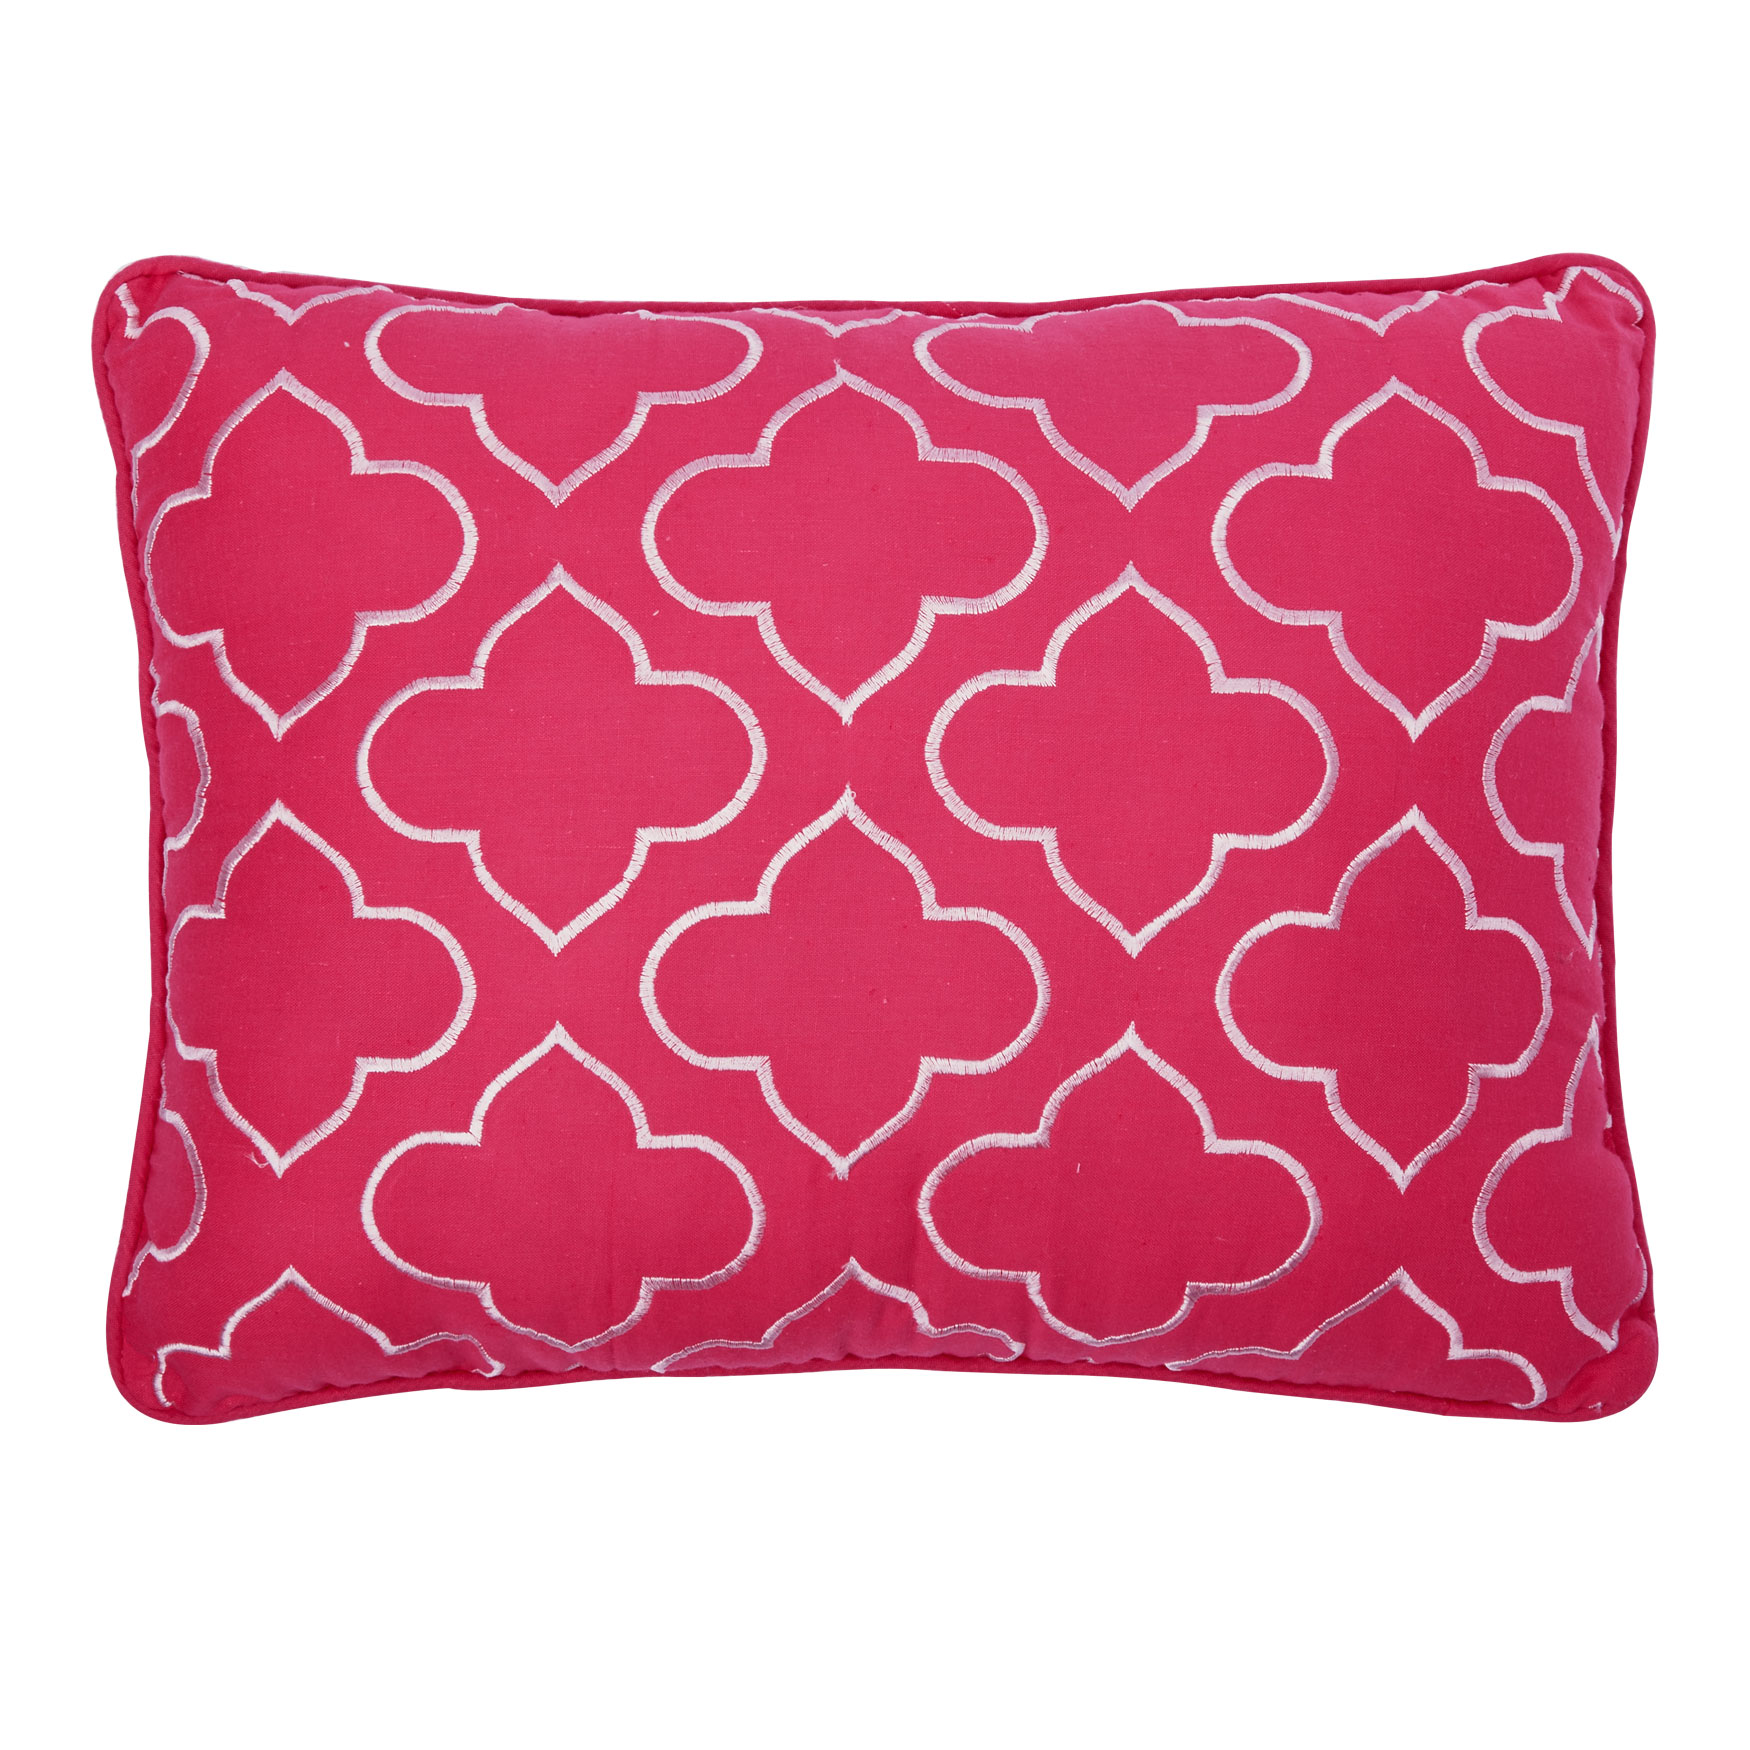 BrylaneHome® Studio Chloe Floral Breakfast Pillow, PINK WHITE